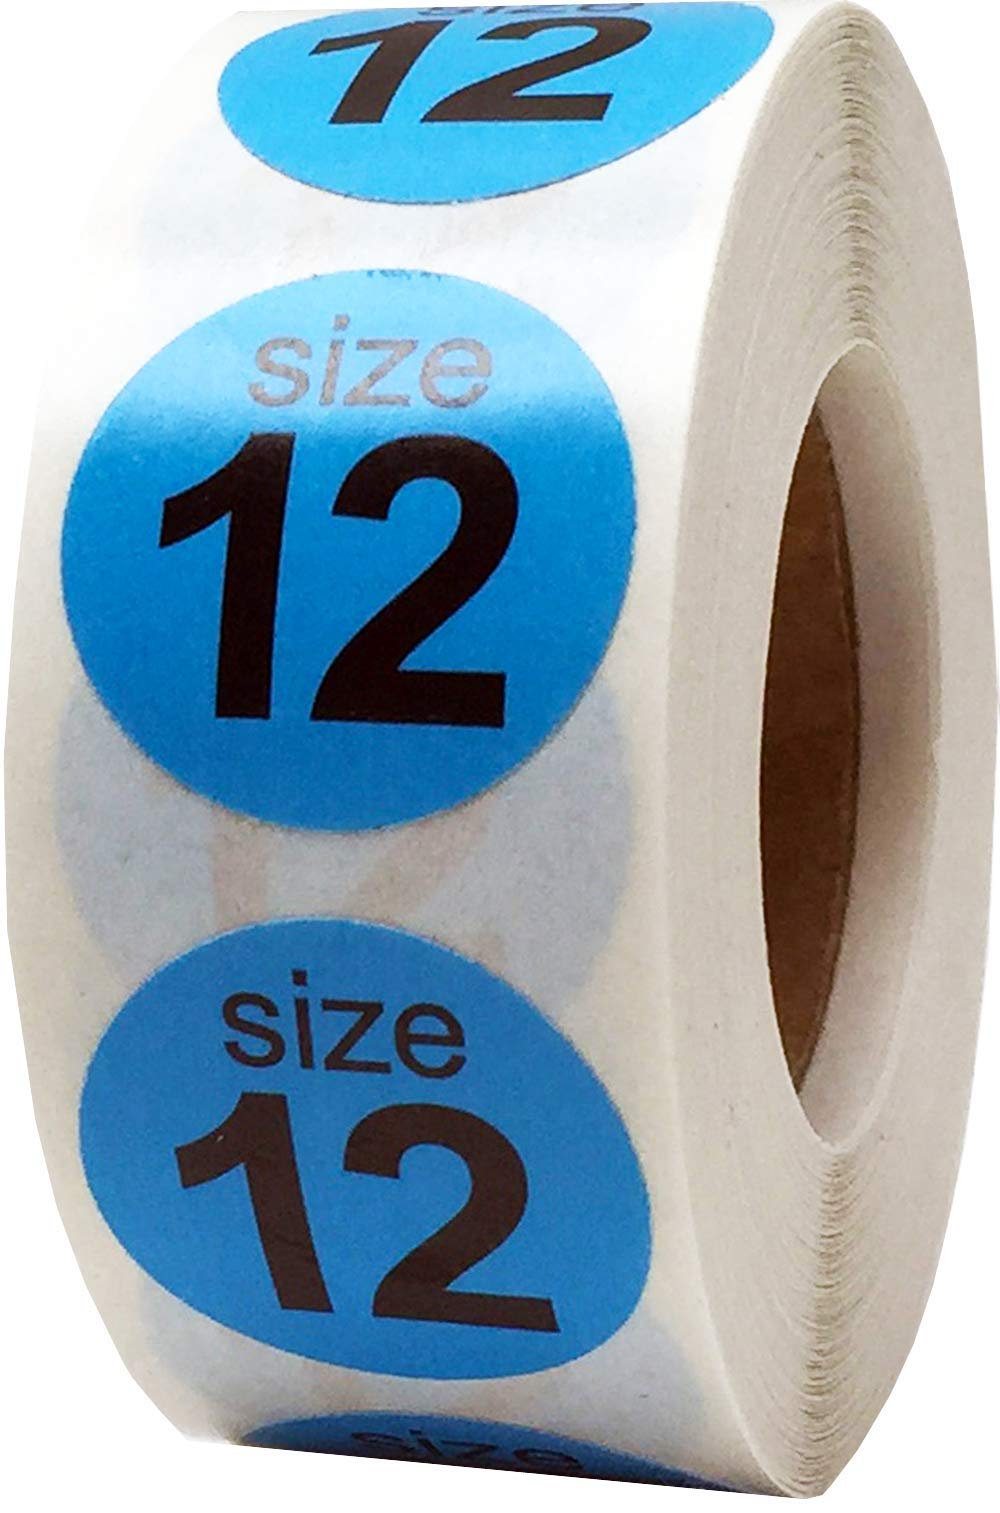 Shoe Size 12 Hot Blue Stickers for Retail Clothing 0.75 Inch 500 Total Adhesive Labels